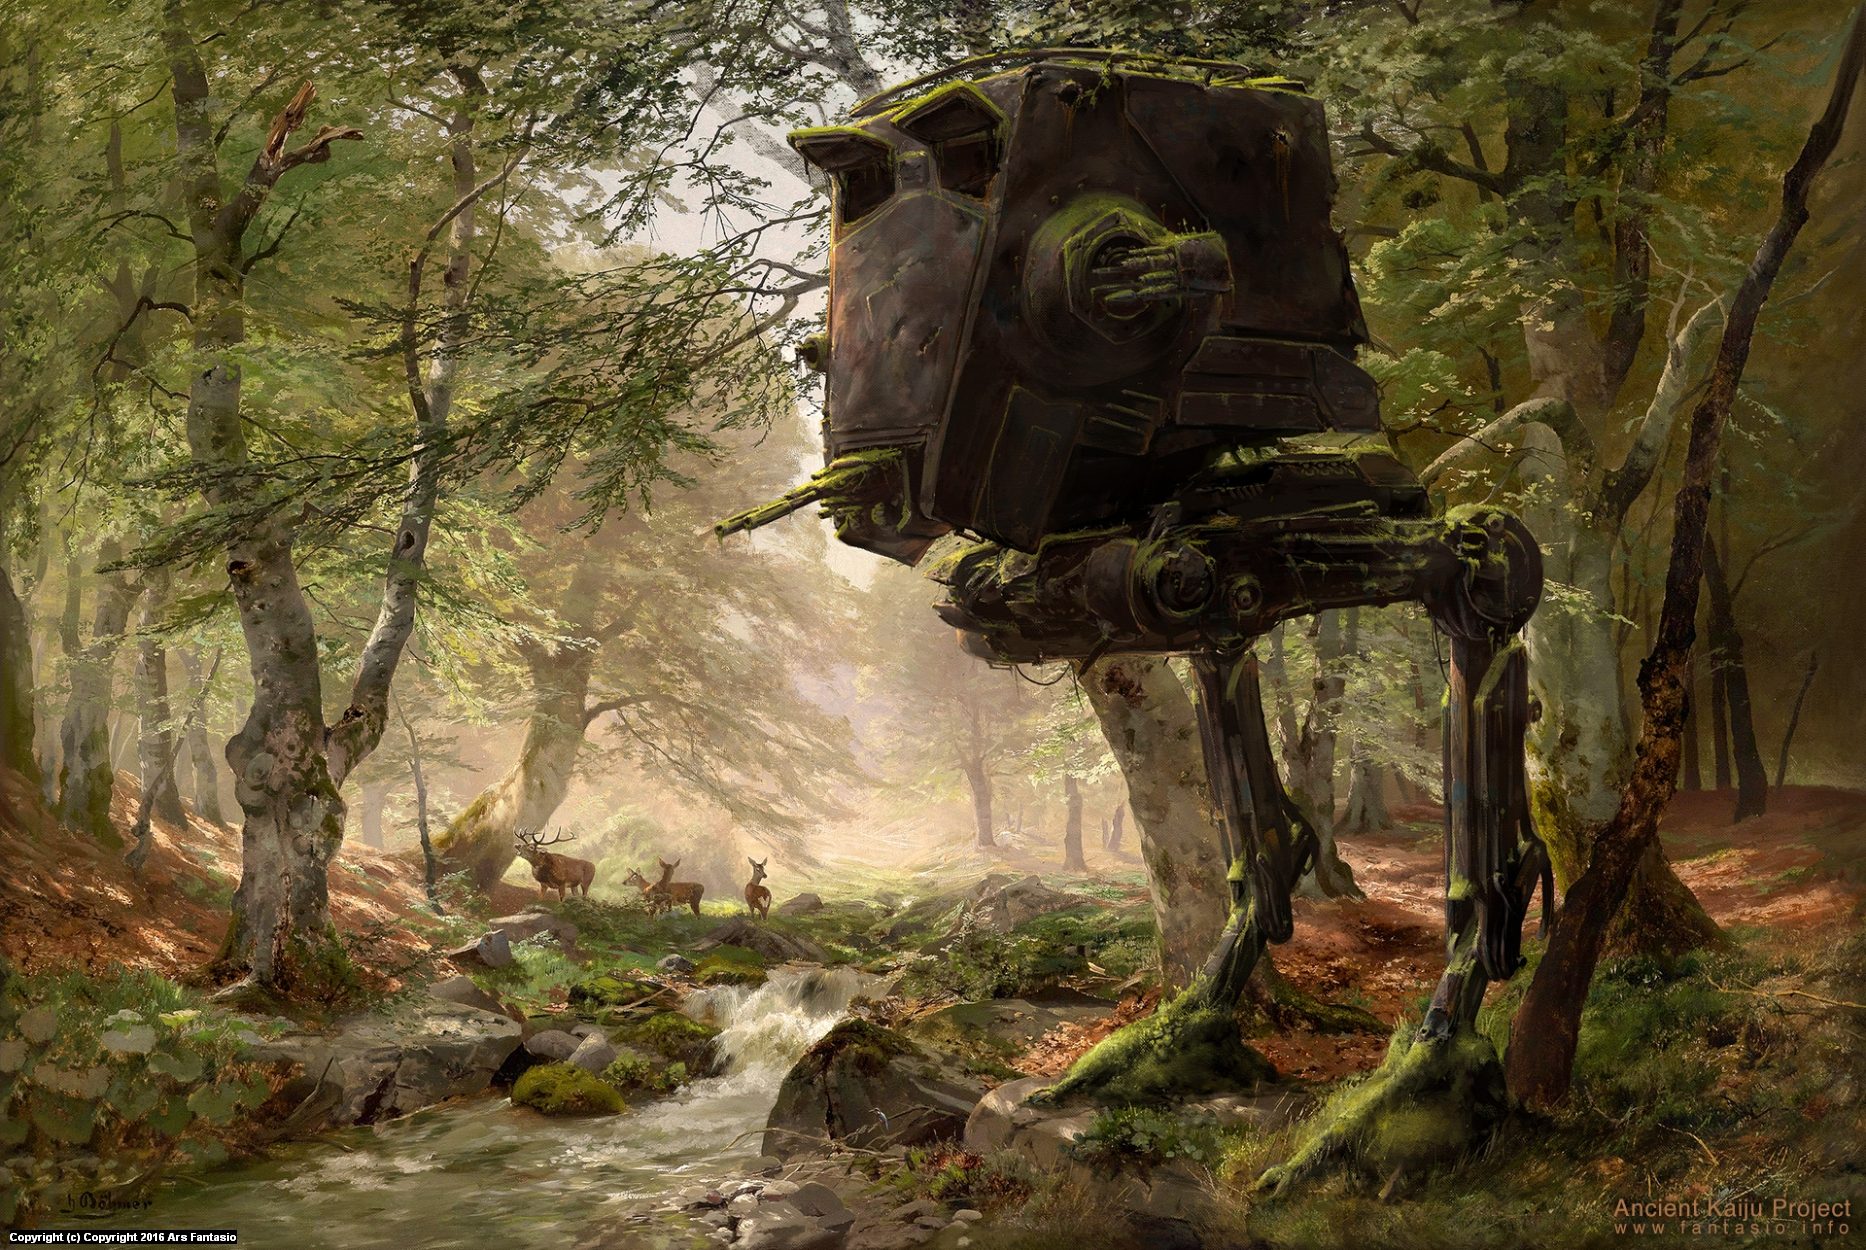 Abandoned AT-ST in the Forest Artwork by Oliver Wetter